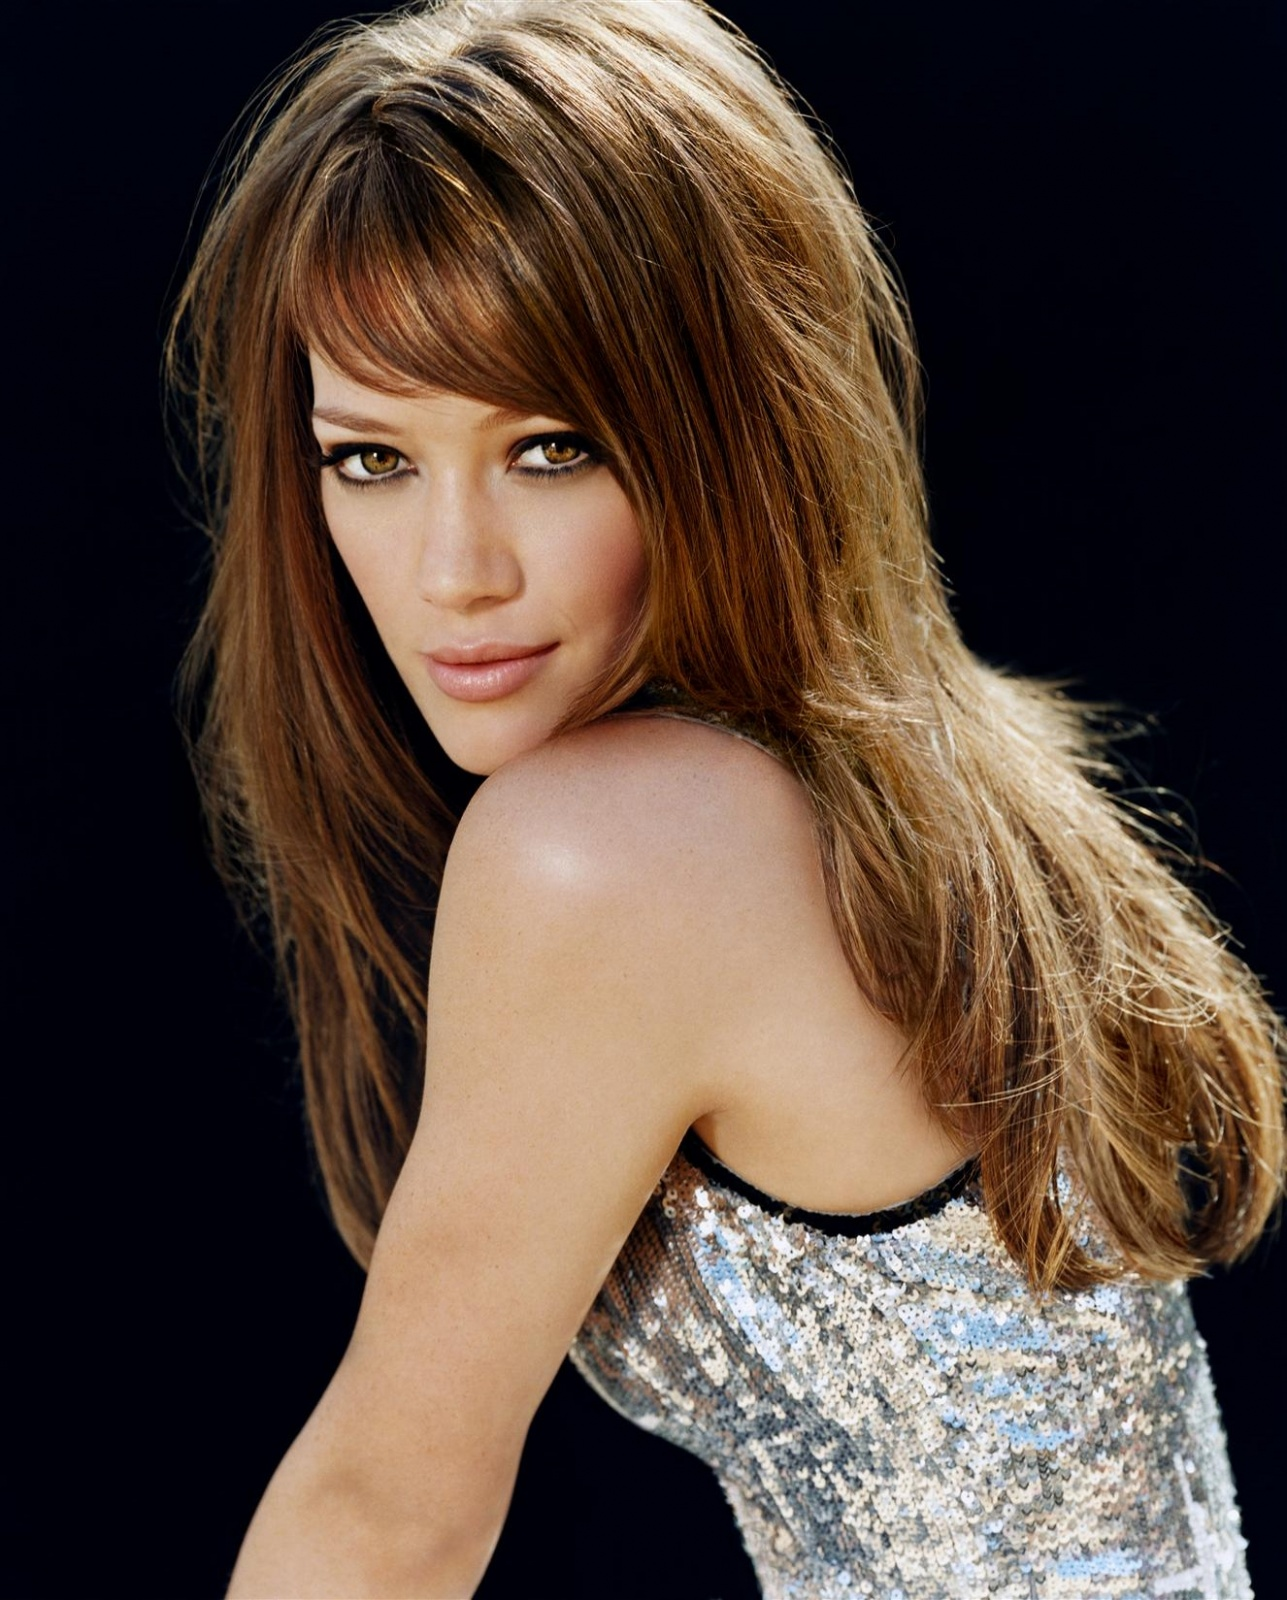 Hilary Duff Hollywood Actress Latest Wallpapers ~ The Aj ...